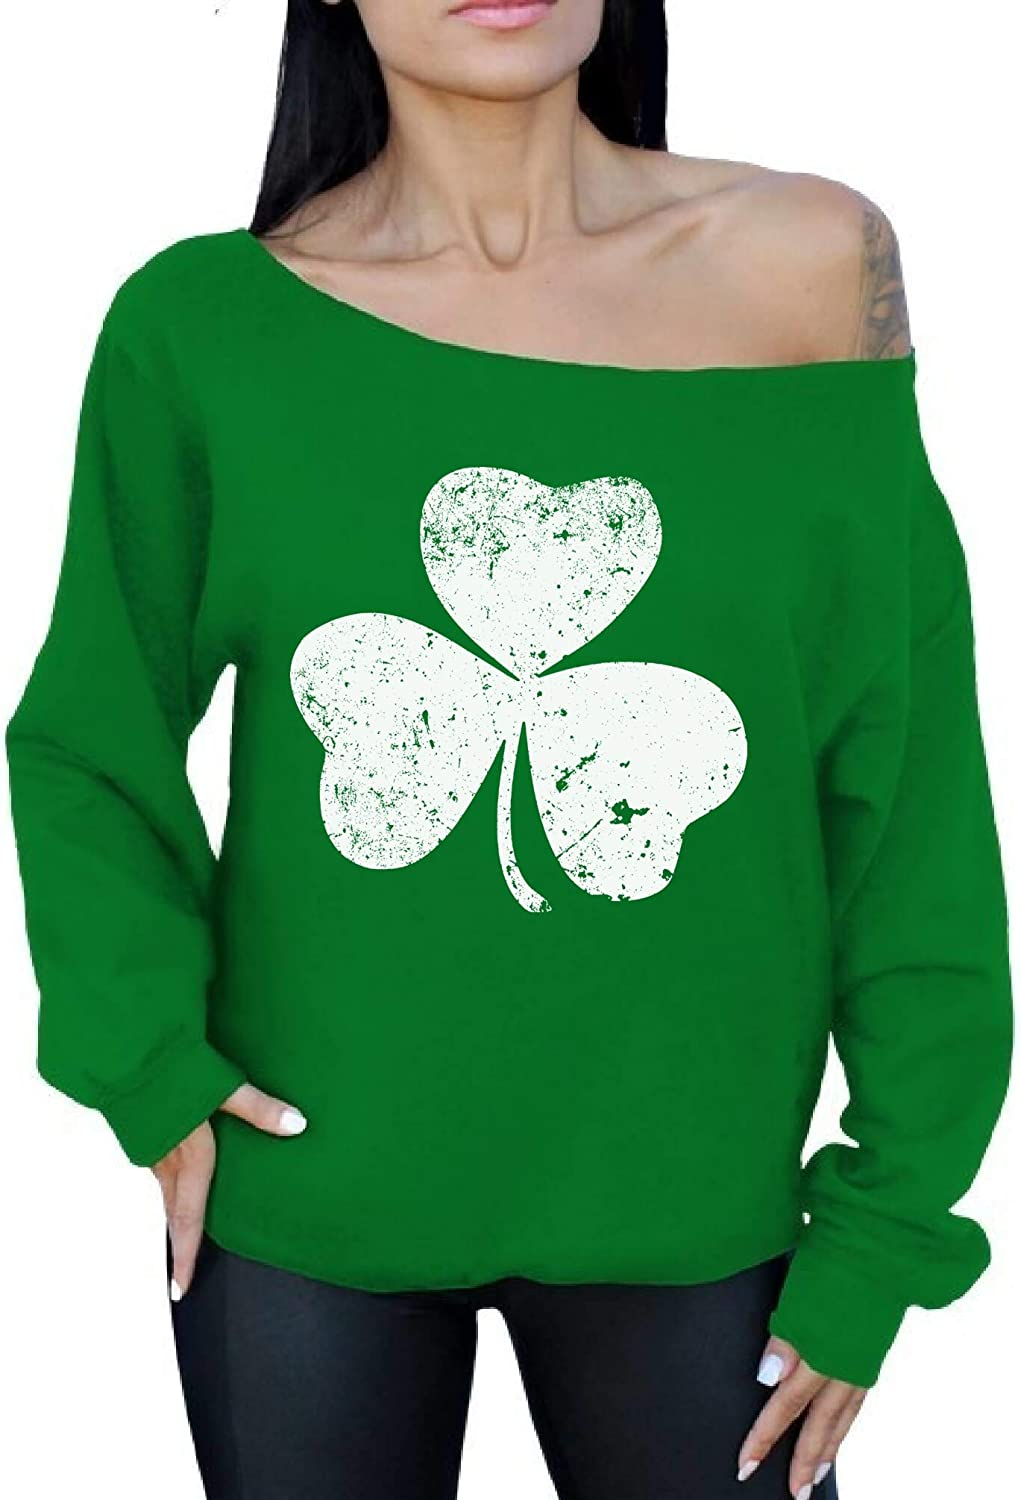 Awkwardstyles Irish Off The Shoulder Oversized Sweatshirt St Patricks Day G